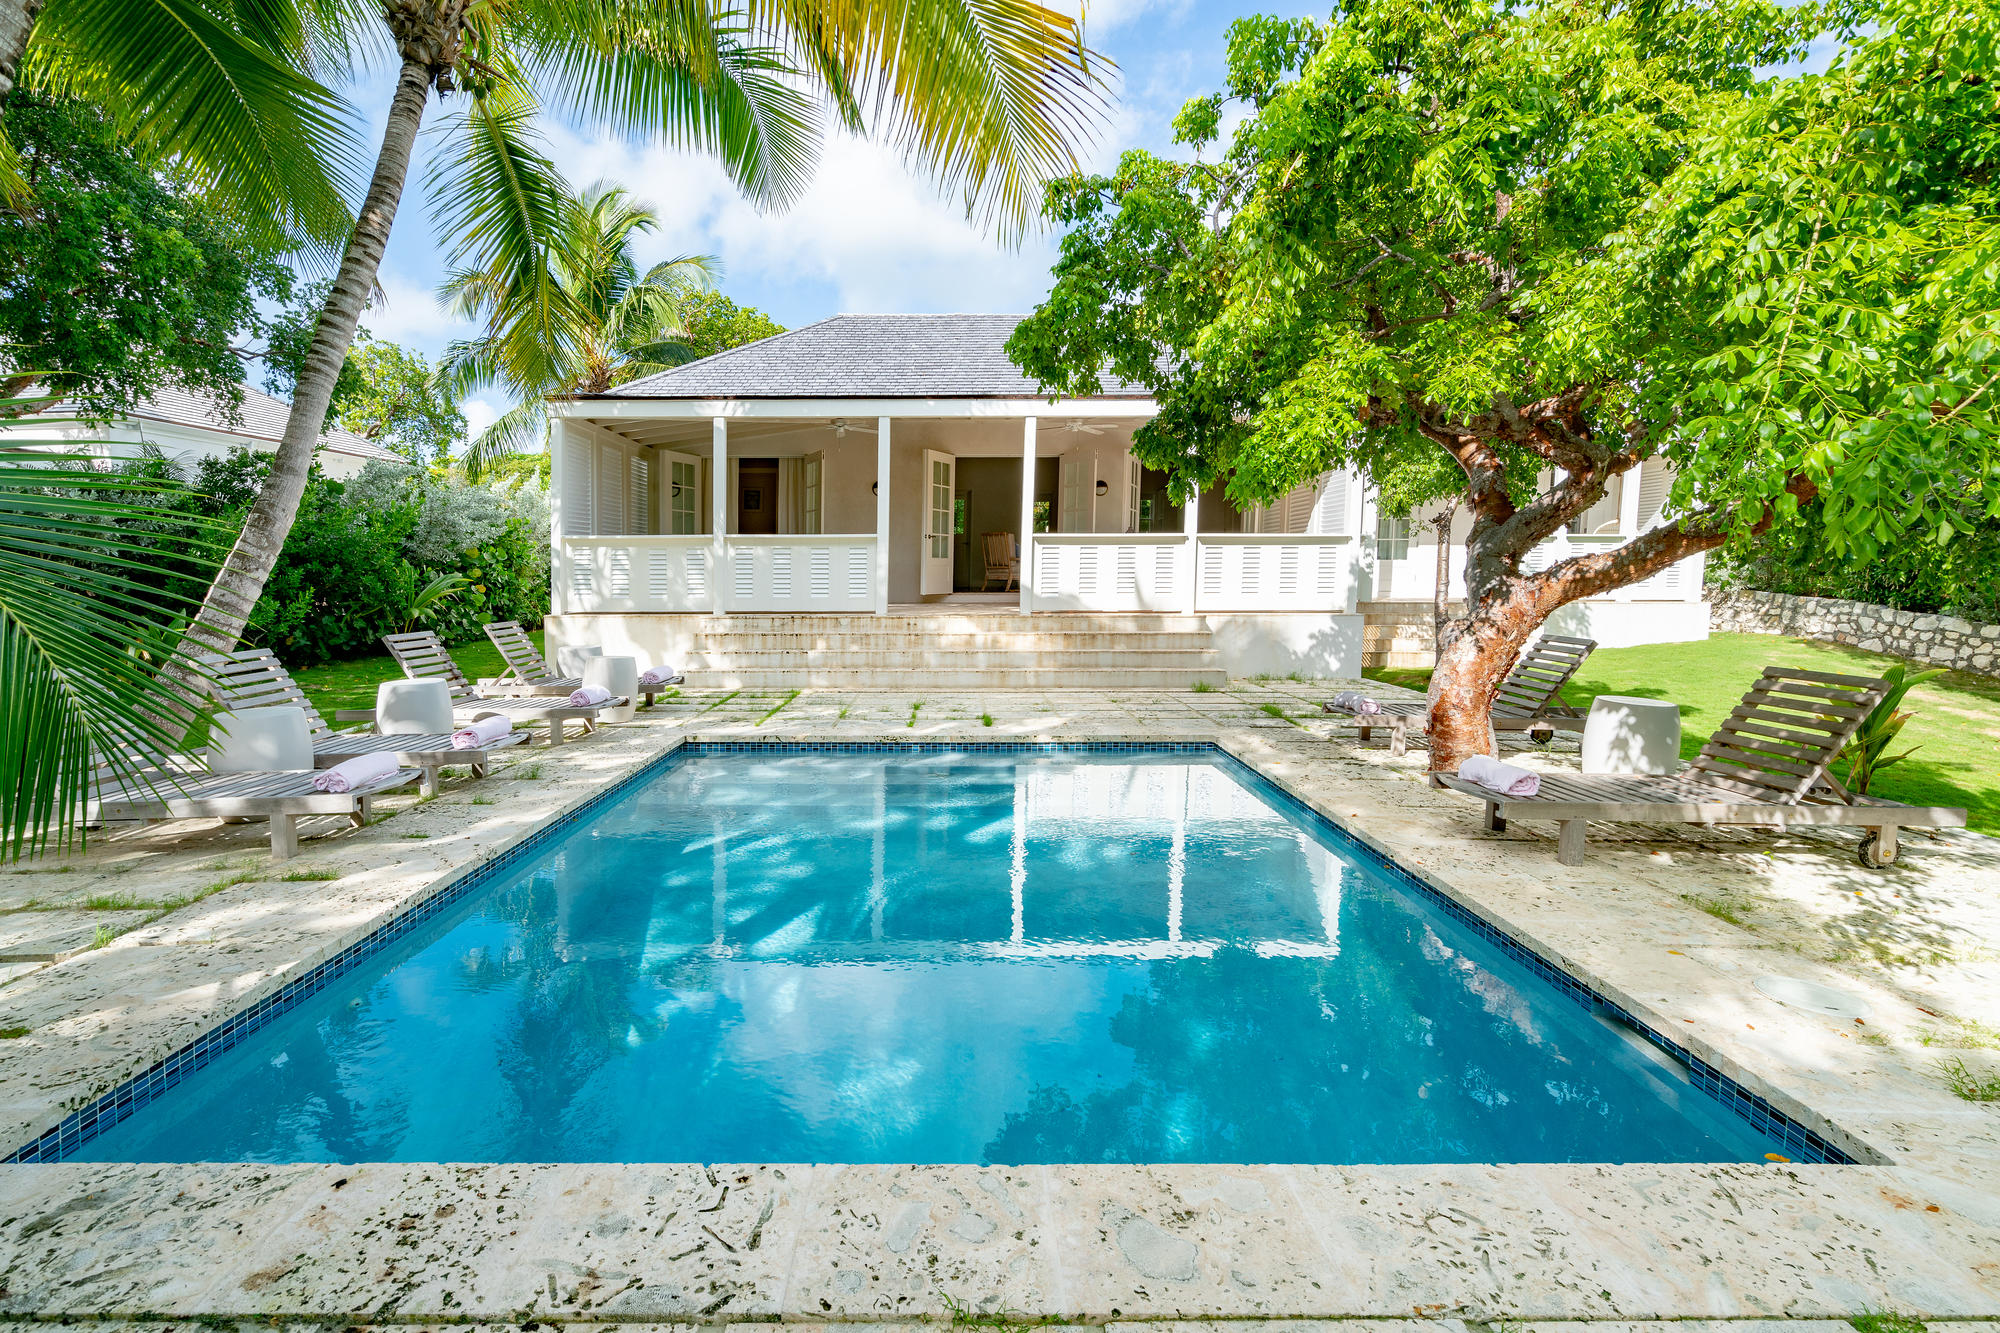 12 Caribbean Resorts With Stunning Plunge Pools